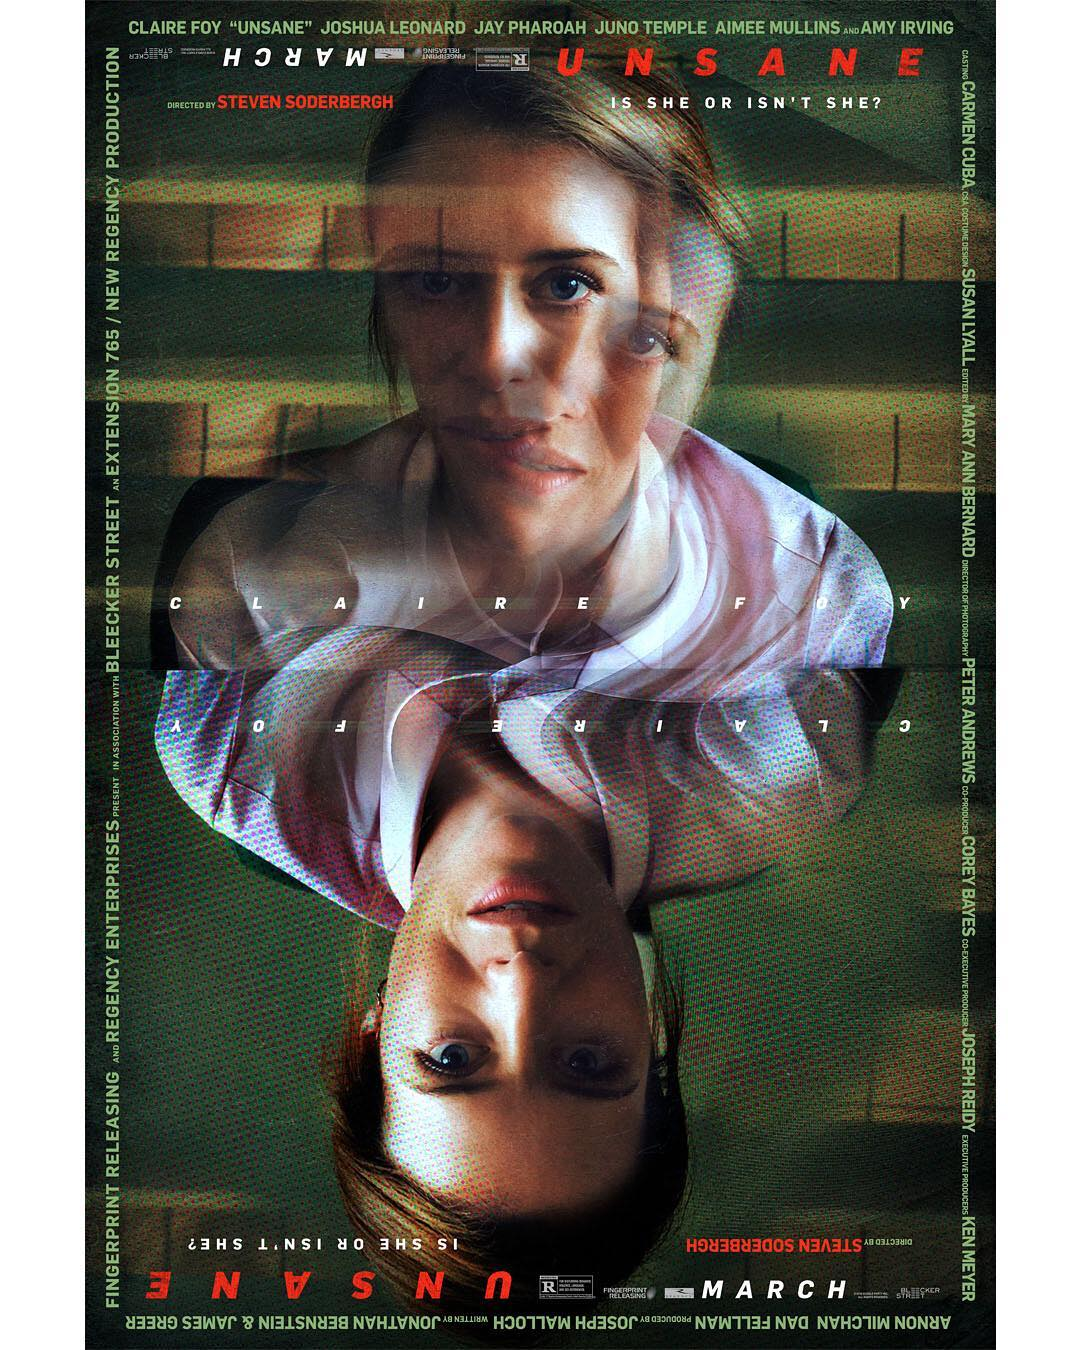 Unsane movie release date: March 23rd,2018.